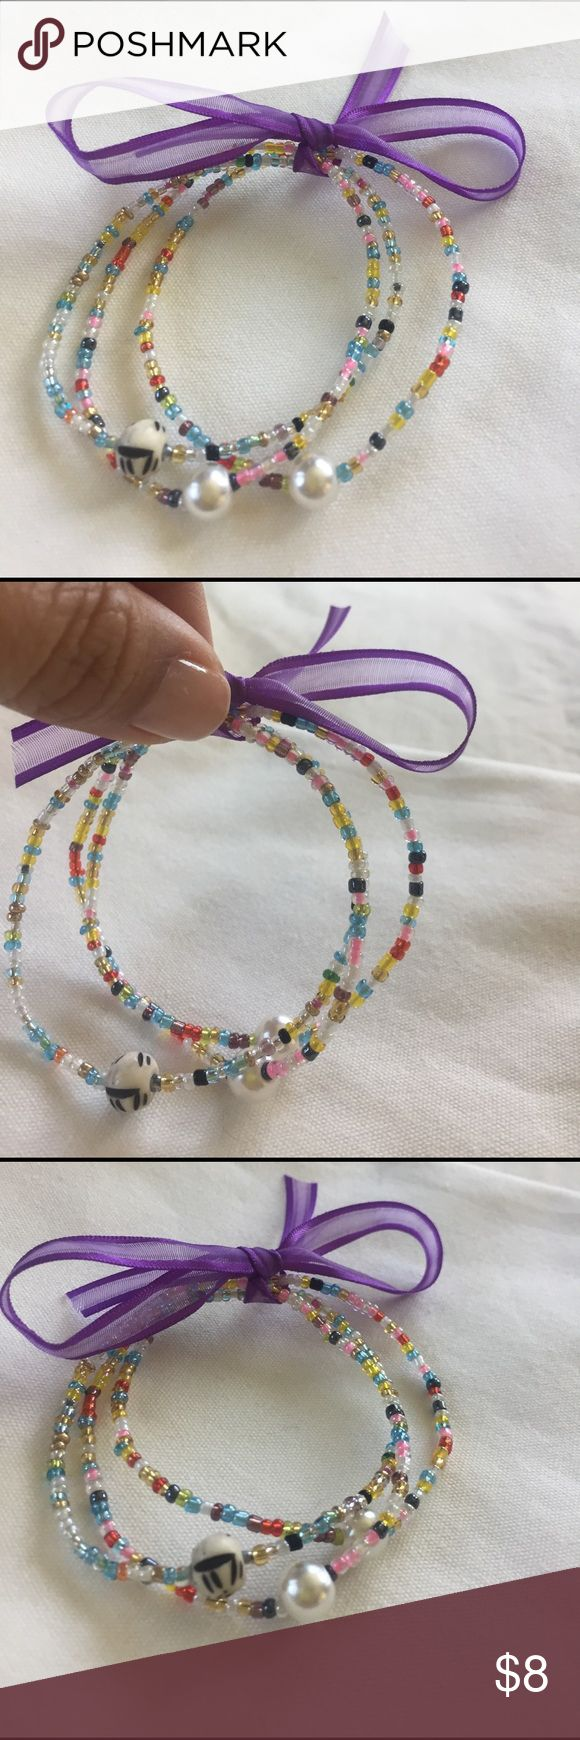 Color Me!!! Wrist Bead Bracelet Three assorted colorful beaded bracelet. Tight elastic stretch. Length is 6 - 6 1/2 inch and roll on to wrist. Saw in-store price at $15.  Bracelets are handmade by my daughter, she is fund-raising for her Merrie Monarch Hula Competition Accessories